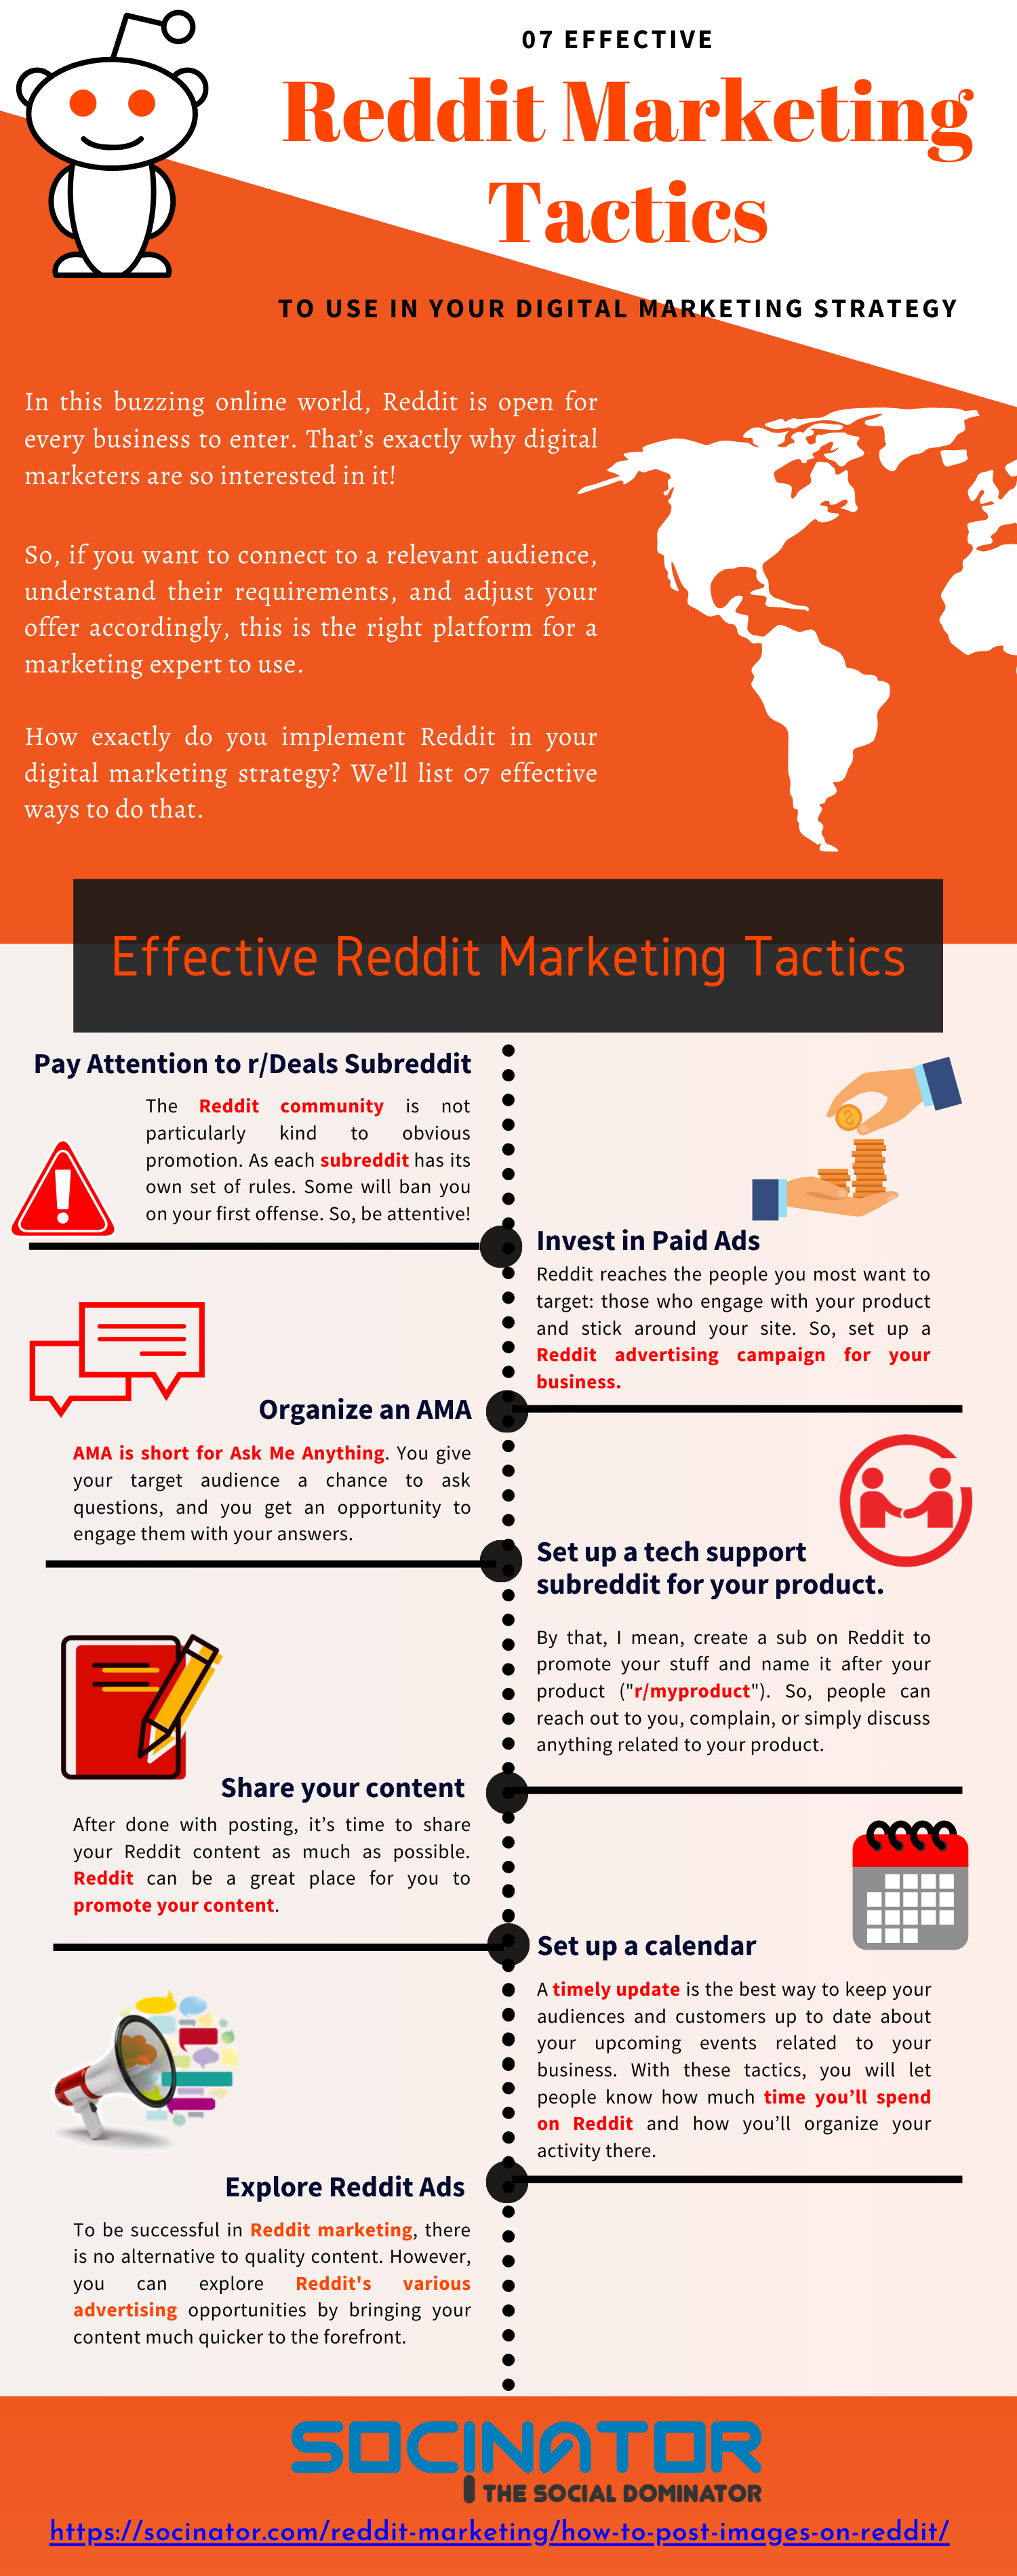 07 Effective Reddit Marketing Tactics To Use In Your Digital Marketing Strategy Digital Marketing Strategy Marketing Tactics Marketing Strategy